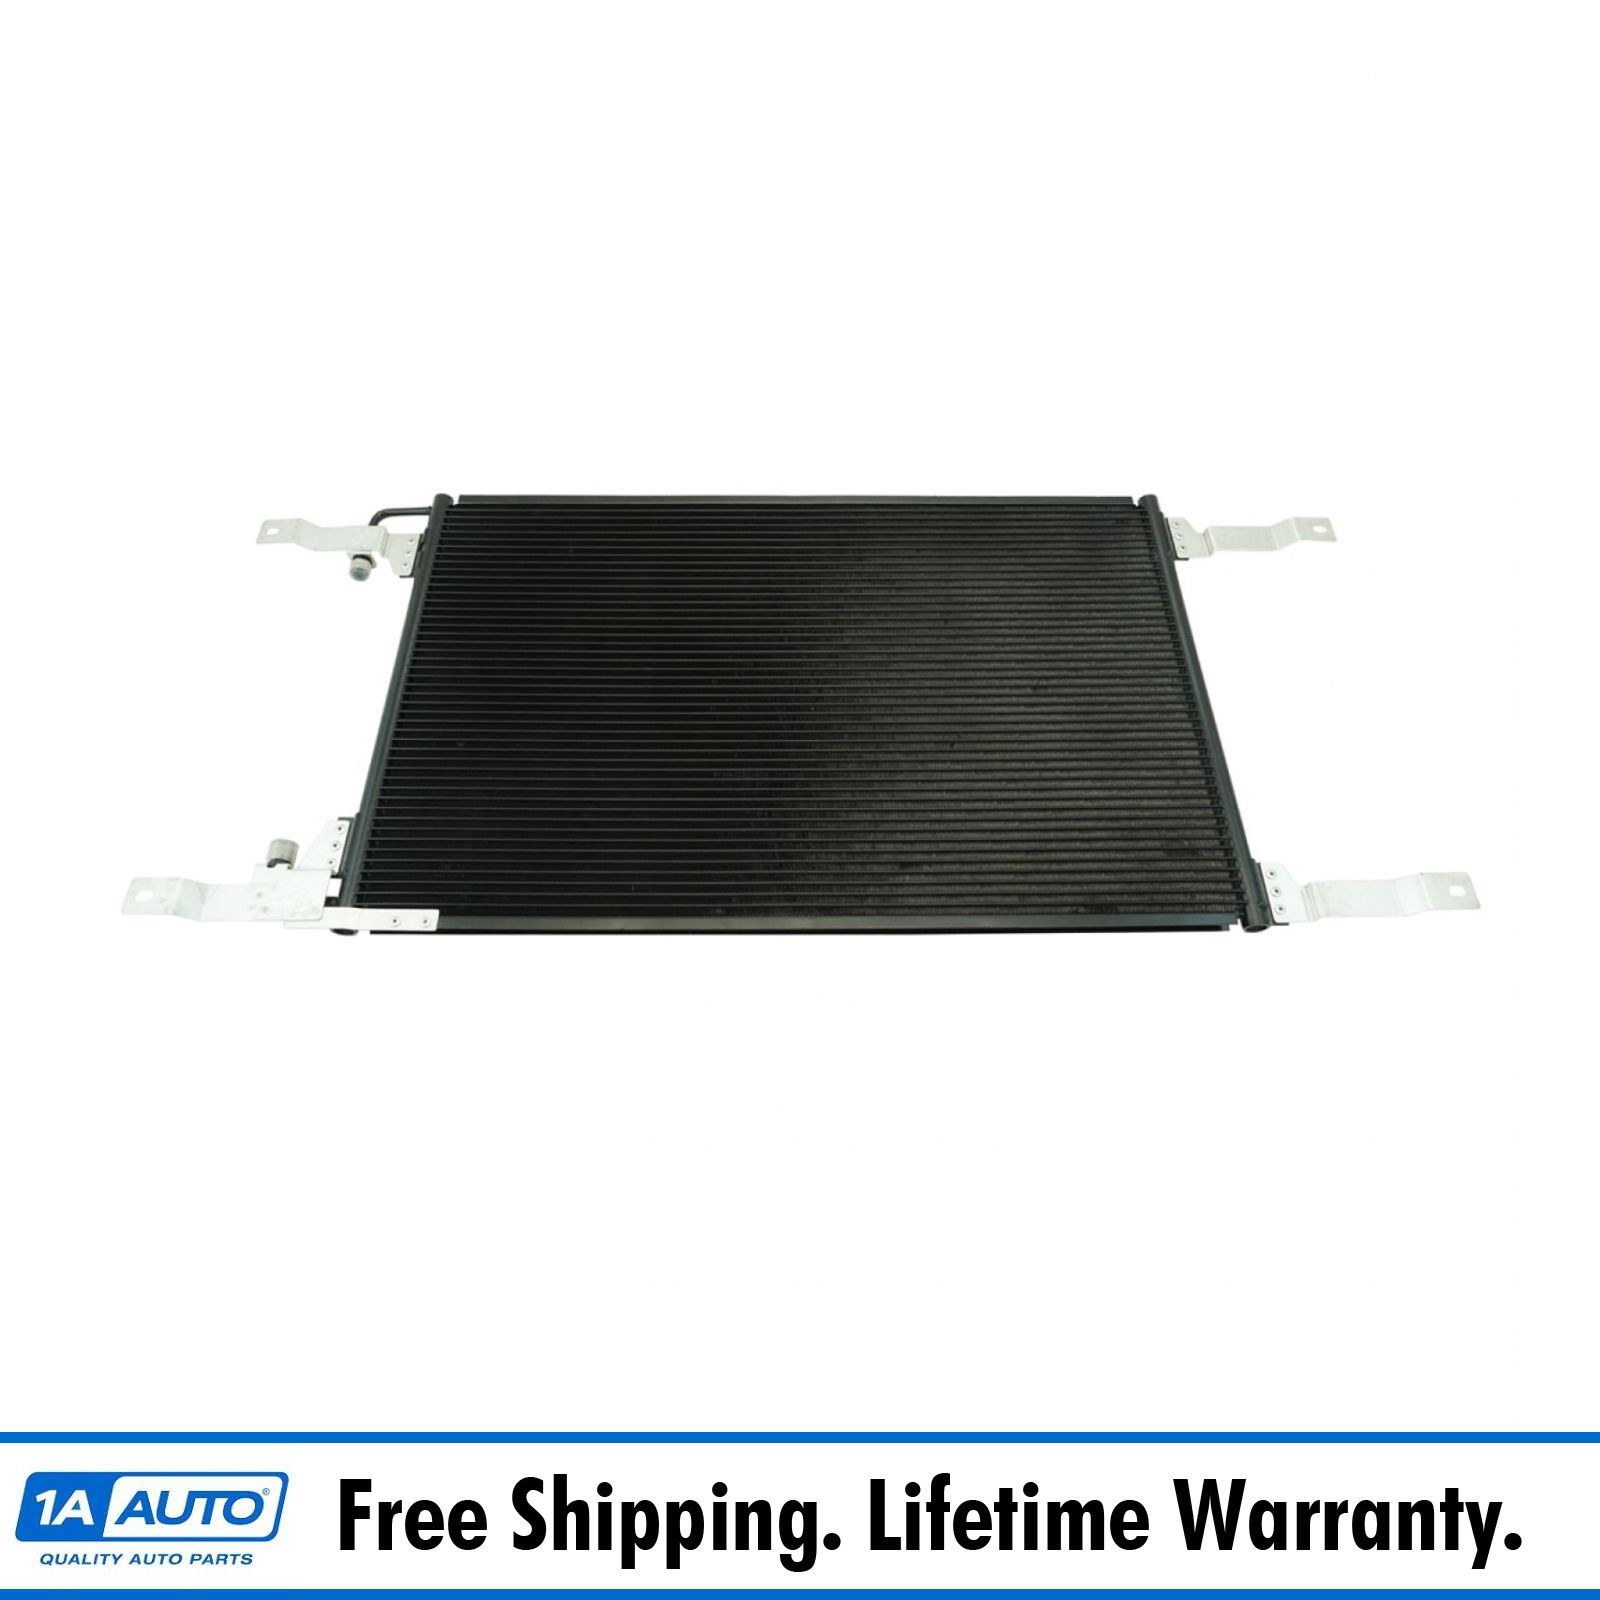 Details about AC Condenser A/C Air Conditioning for Freightliner Century  FLD 112 120 Truck New